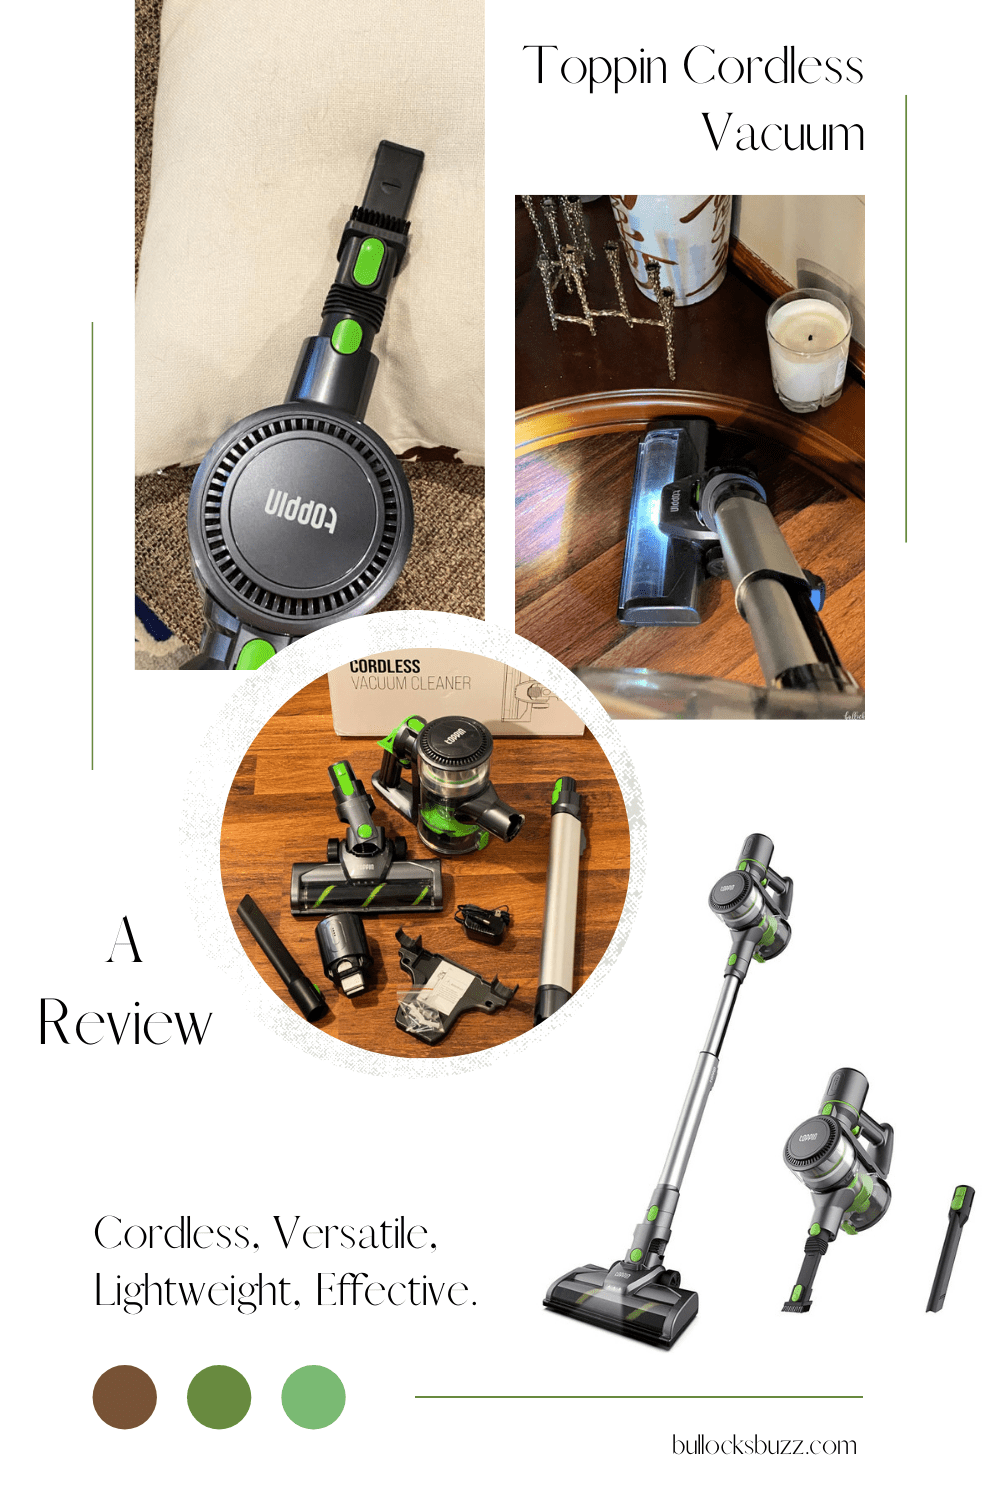 7 reasons why you'll love the Toppin cordless vacuum